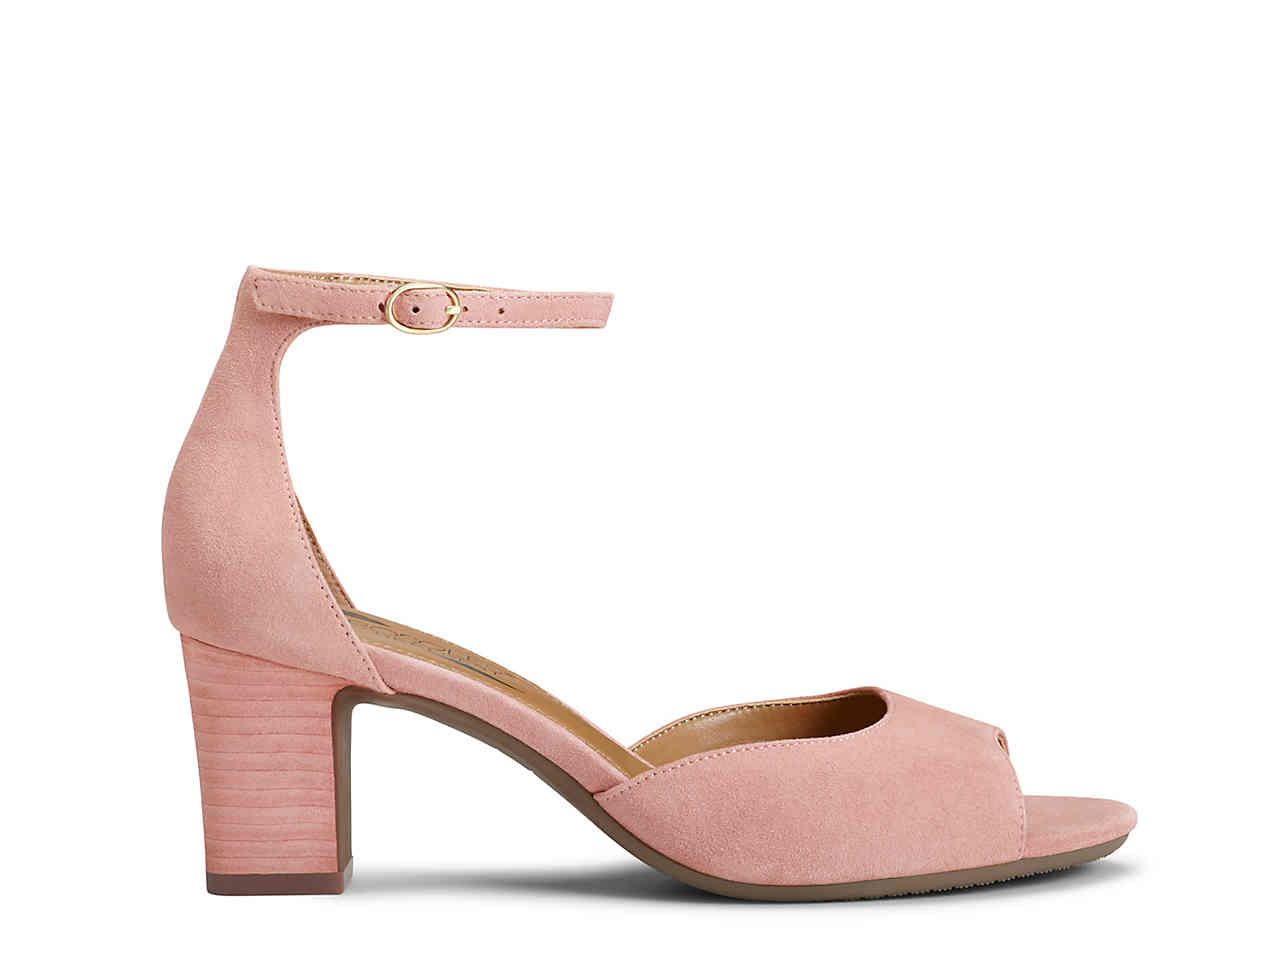 Women's Shoes, Boots, Sandals & Heels | Free Shipping | DSW